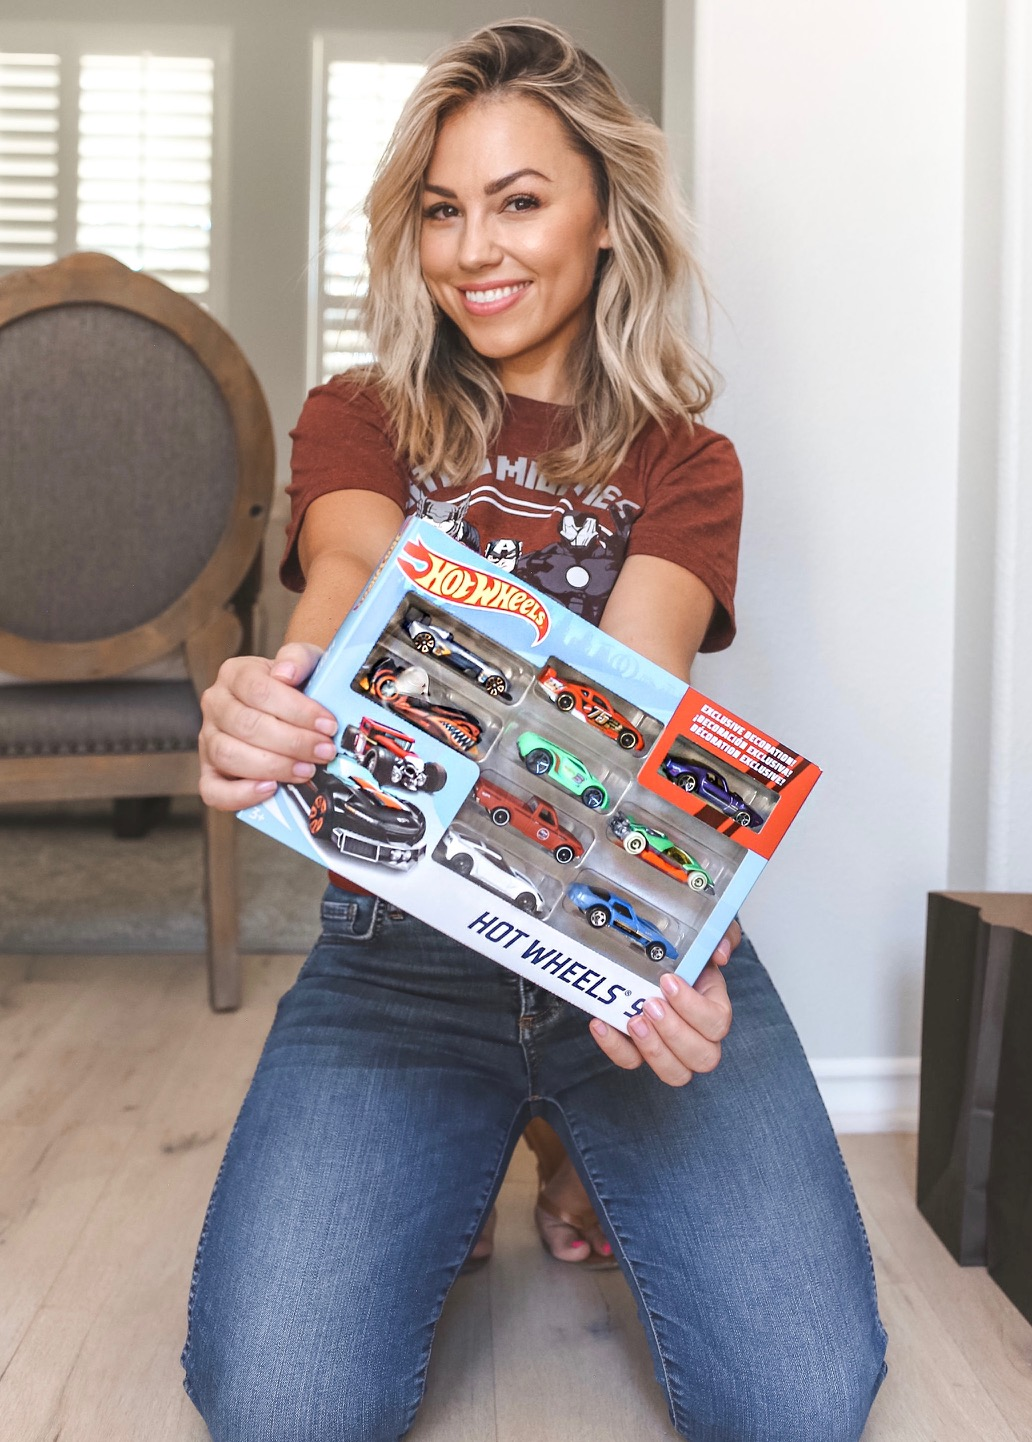 Jessica with Hot Wheels cars